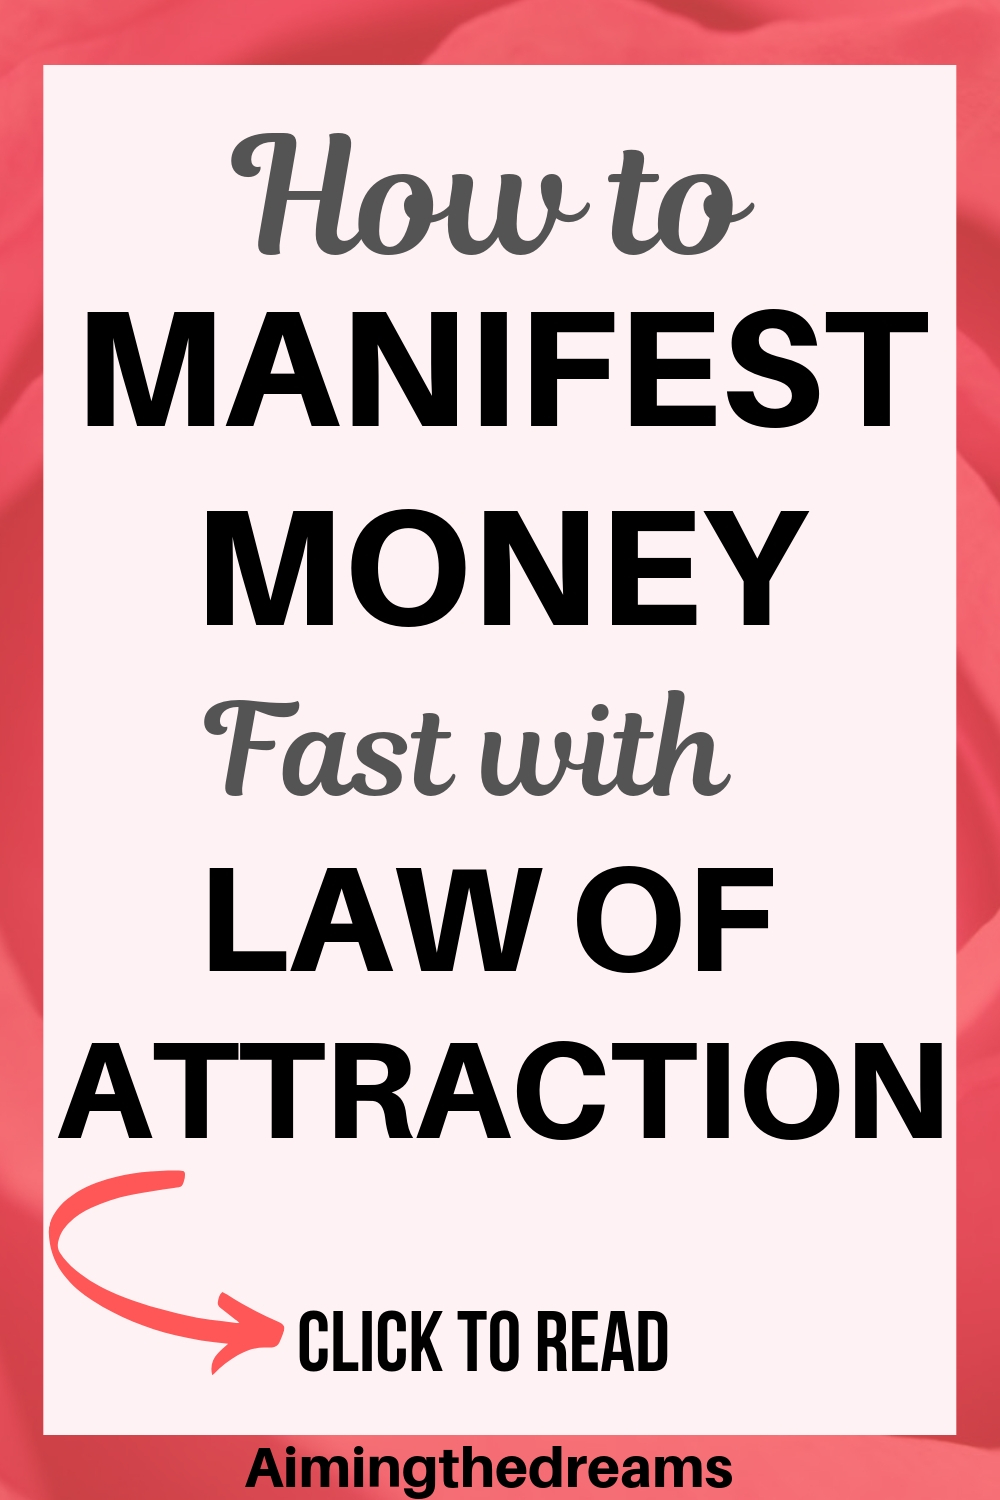 How to manifest money abundant money with law of attraction and create anundance.